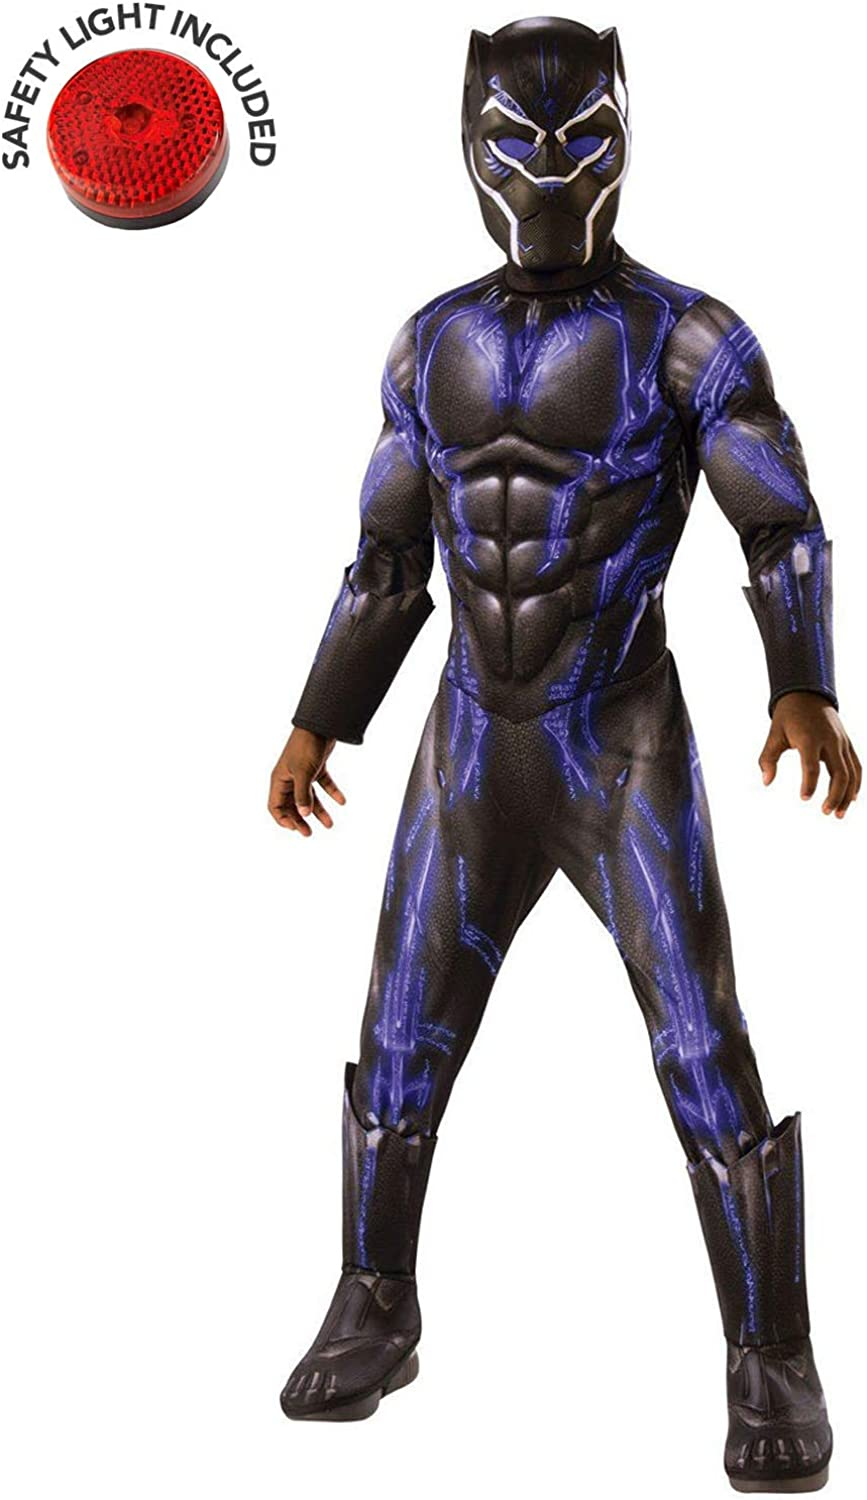 Kids Deluxe Black Panther Adults Fancy Dress Avengers Endgame Superhero Costume